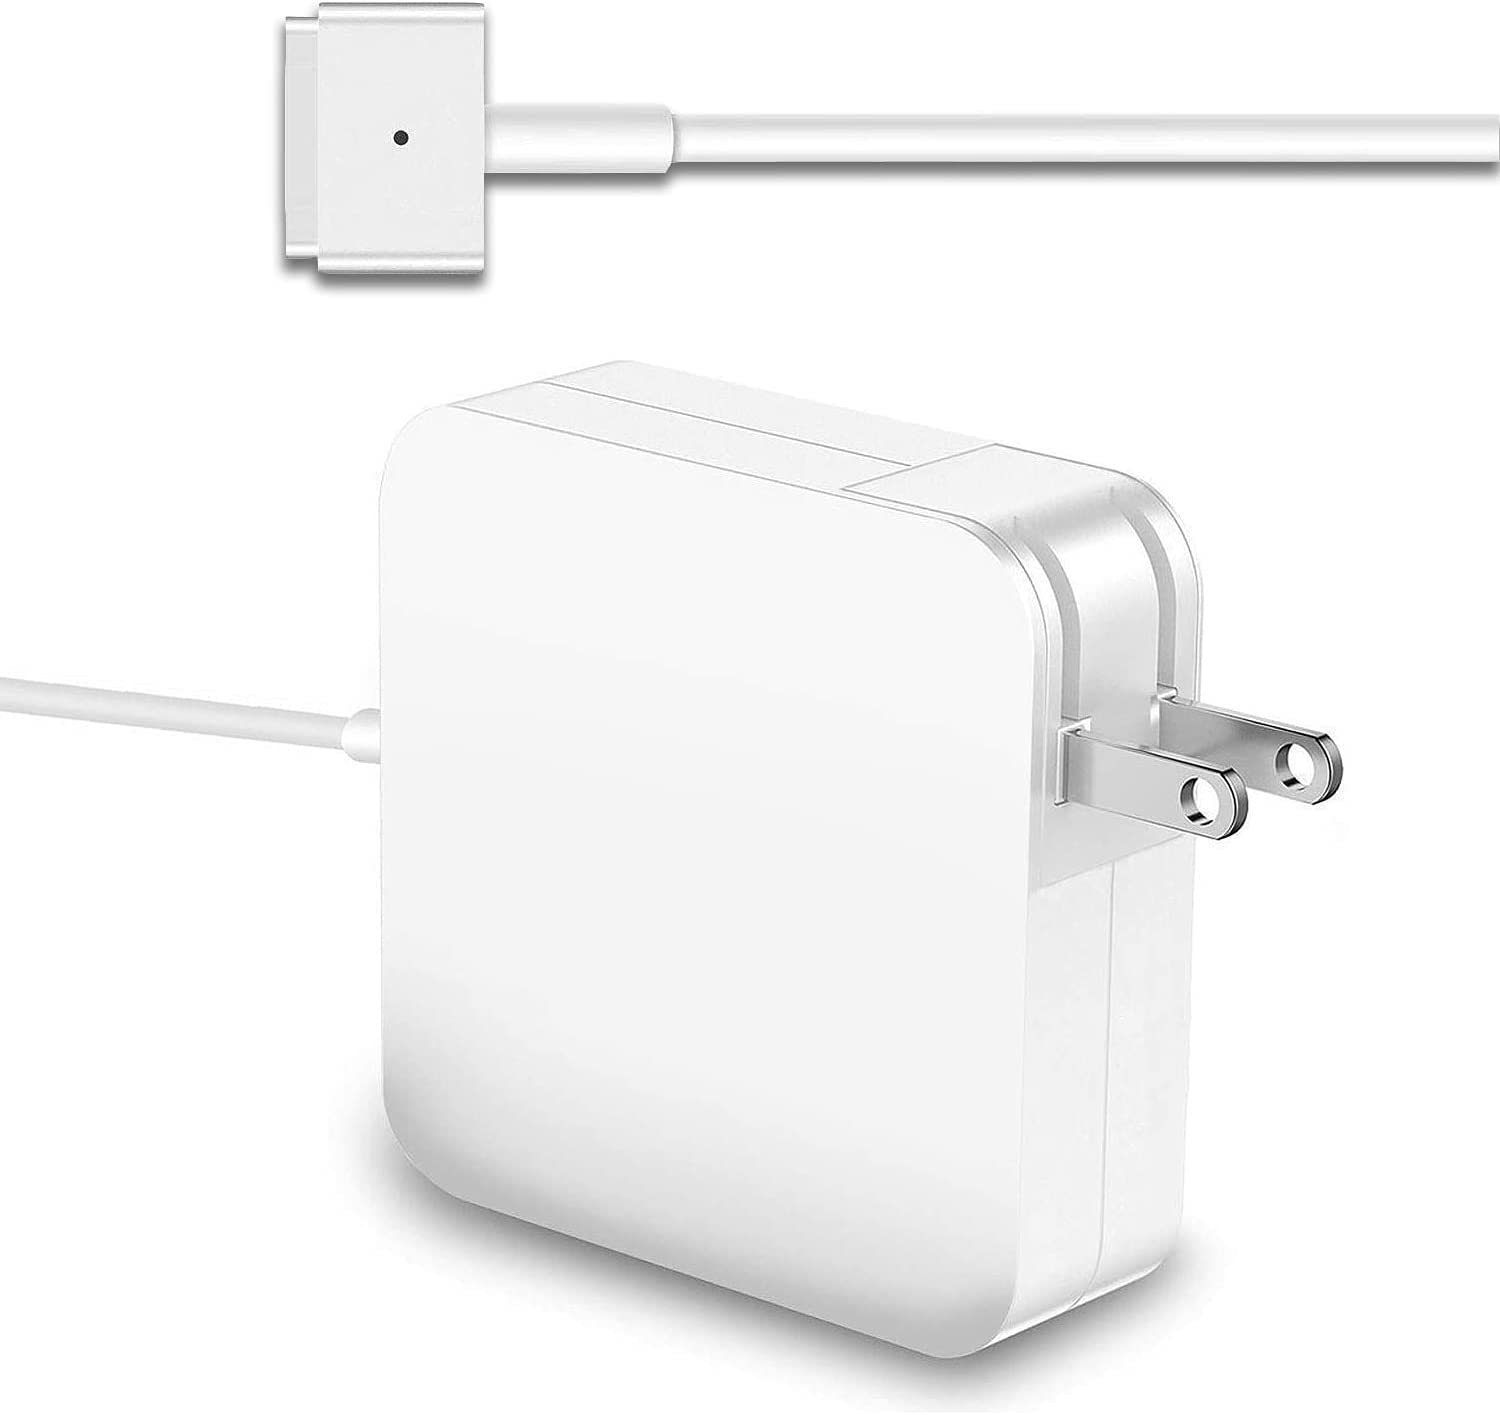 Book Air Charger, Replacement Magnetic 45W T-Tip, Power Adapter Compatible with Mac Book Charger/Mac Book air( After Late 2012)